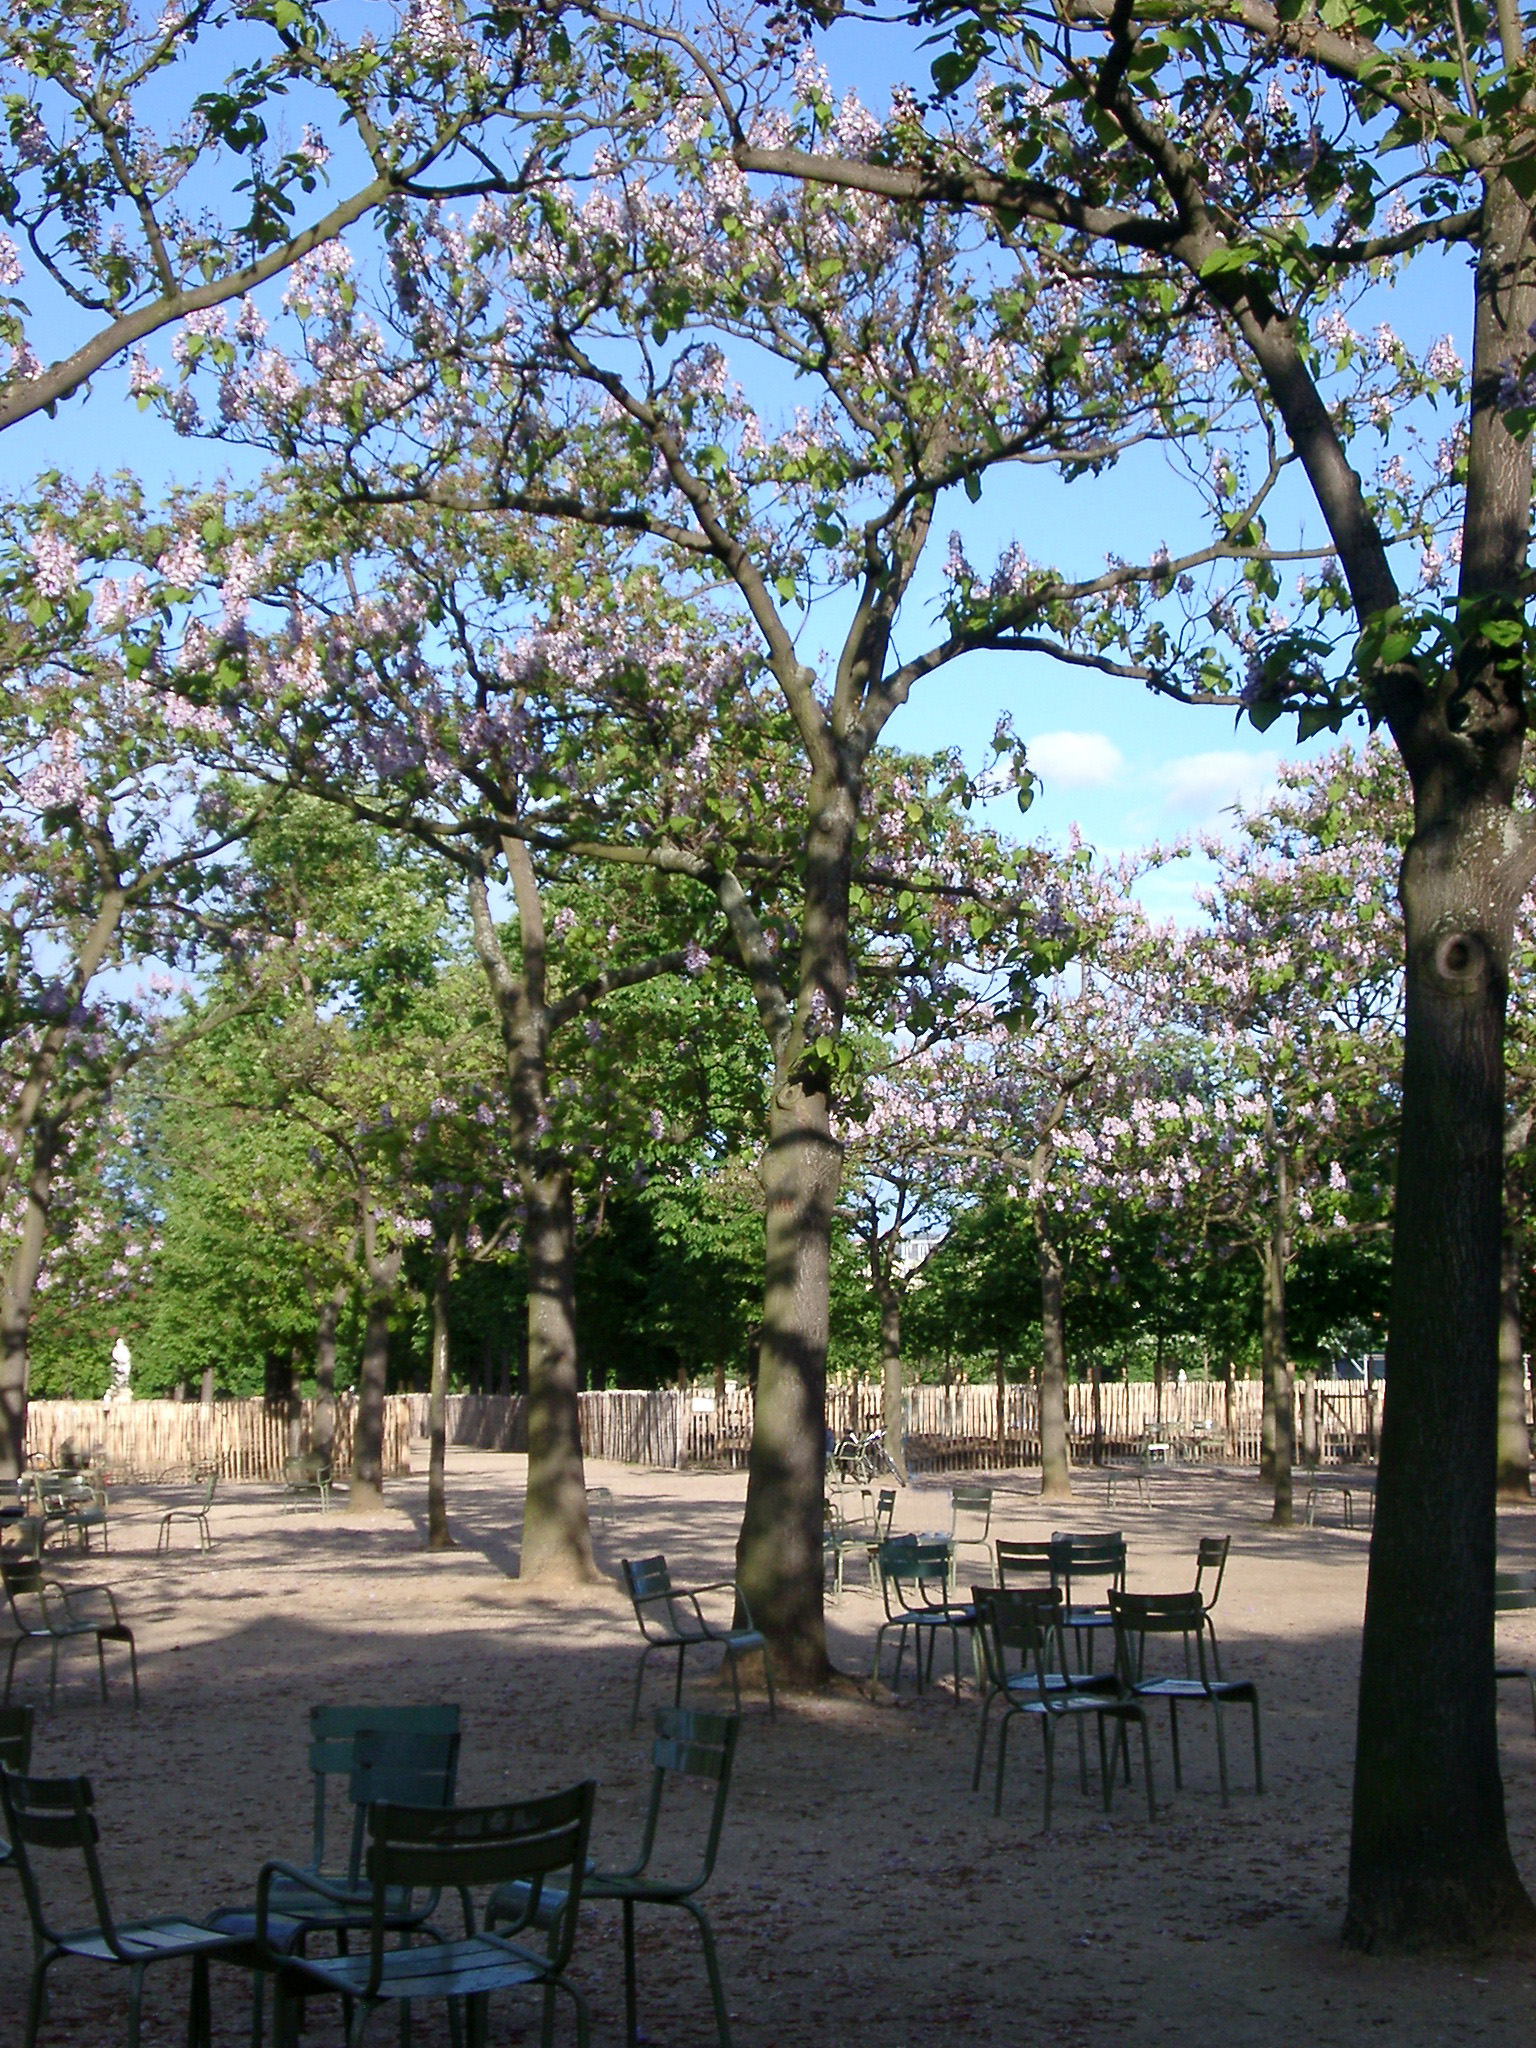 Spring blossom in a Paris park with groups of chairs under shady trees for people to sit and relax